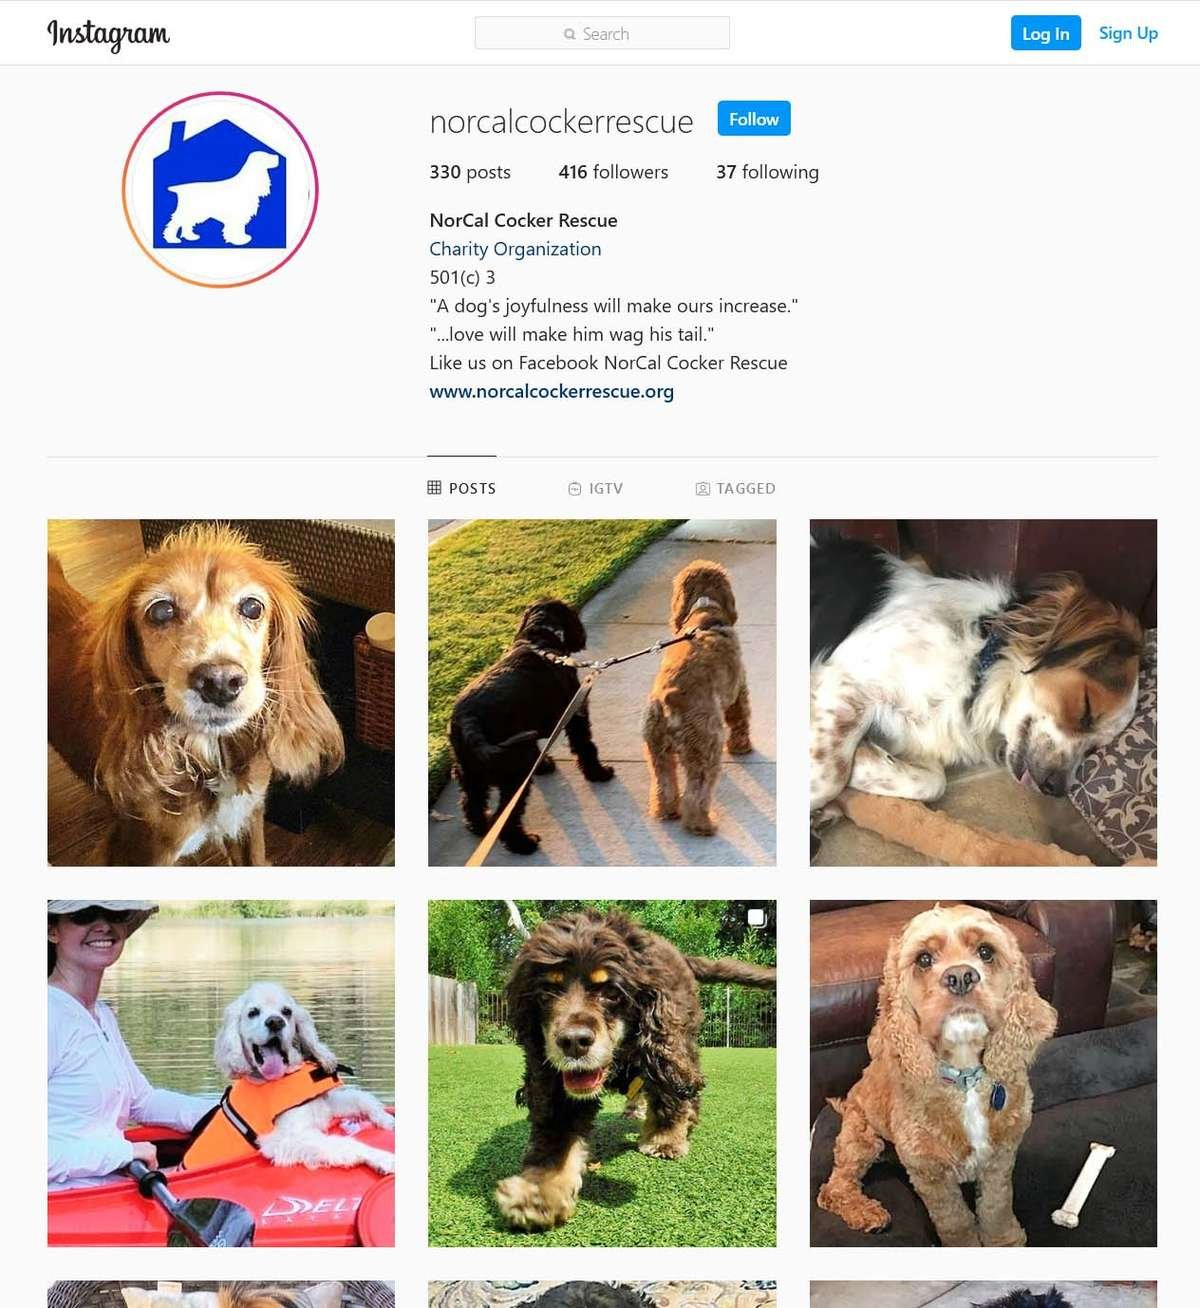 NorCal Cocker Rescue Instagram